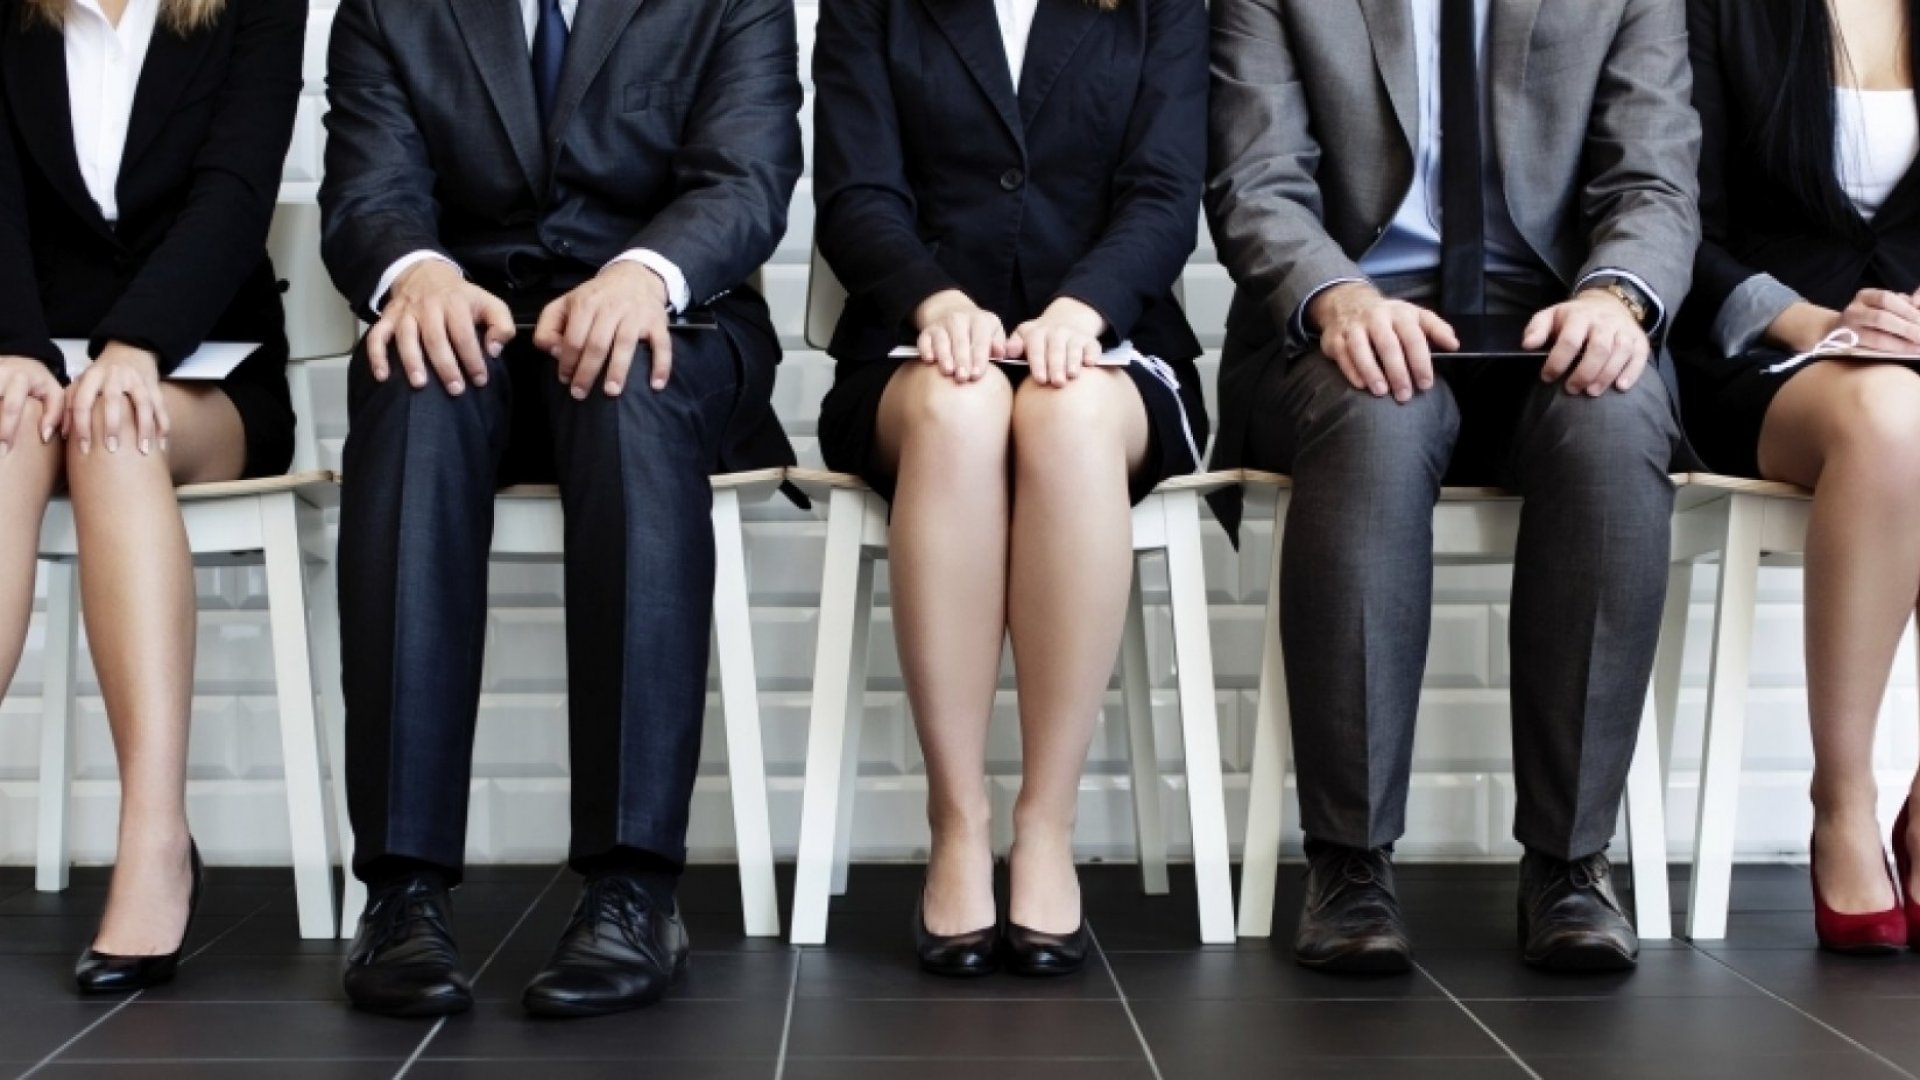 7 Employee Qualities You Must Prioritize When Hiring